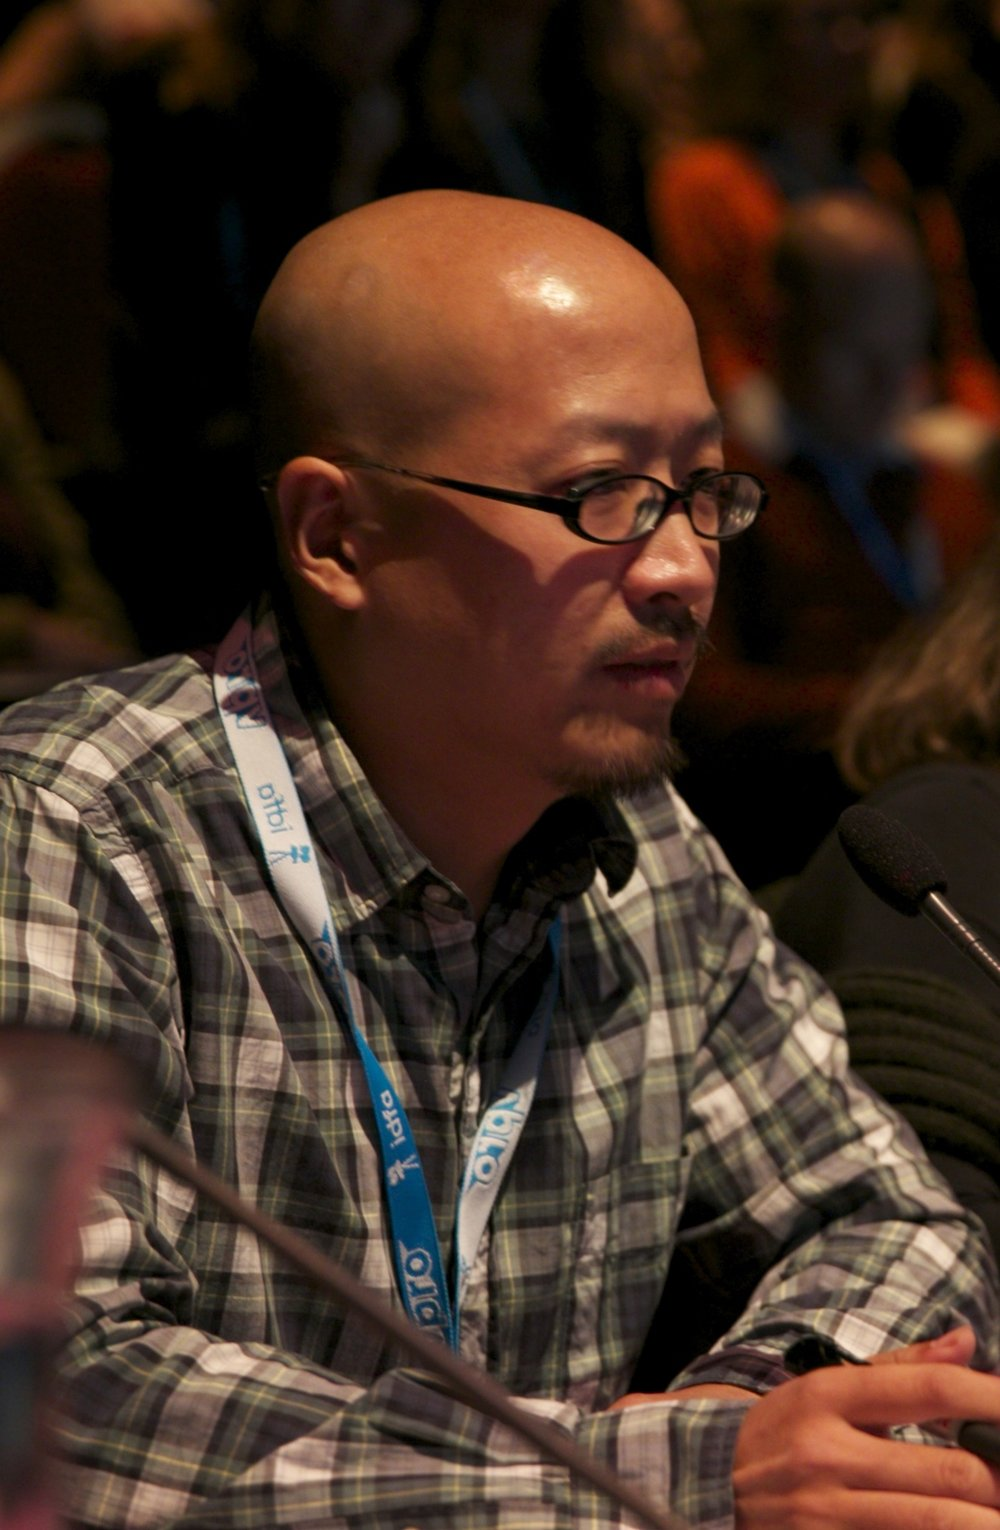 Richard Liang   Producer, Entrepreneur  Richard Liang is an independent producer previously based in Beijing, and now moved to Los Angeles. His feature-length productions include The Next Life (IDFA and GZDoc 2011) and The Road (IDFA 2015, Göteborg Film Festival, TIDF, Sydney Film Festival, AFI Docs, and DOC NYC 2016). Richard's productions had won Best Feature Documentary Award at the Chinese Academy of Documentary Films 2012, Best Chinese Documentary Award at TIDF 2016, and Special Mention at DOC NYC 2016. In addition to being a producer, Richard also has experience in distribution and event organizing. He had been running a copyright agency for feature documentaries in China during 2013-2016, a monthly feature documentary screening event in China during 2013-2014, and he has been scouting Chinese films for IDFA since 2013 and was in the jury of IDFA in 2015.